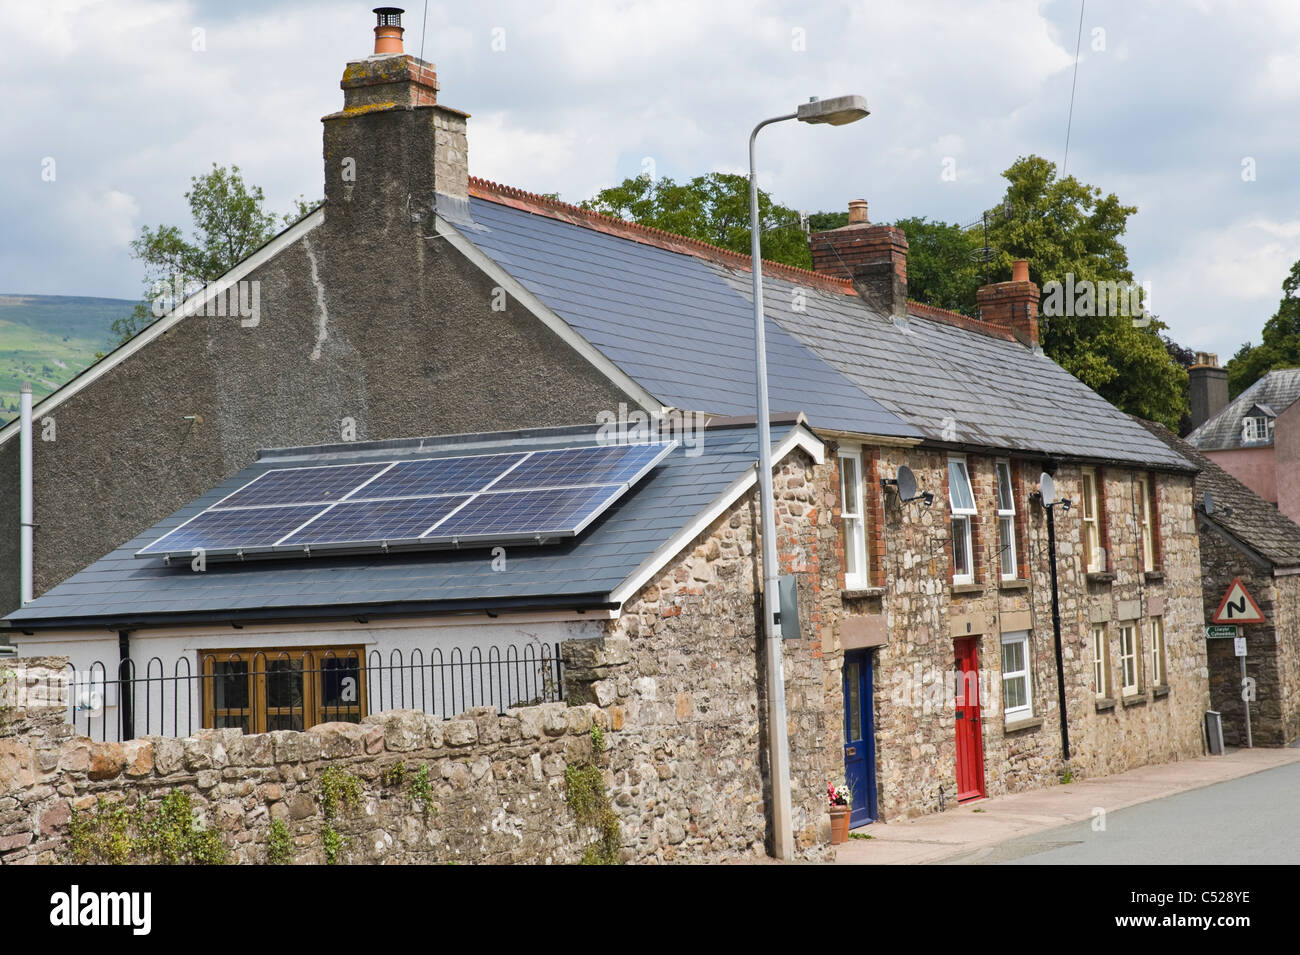 Solar panels on extension roof of terraced house in village of Llangattock Powys South Wales UK - Stock Image